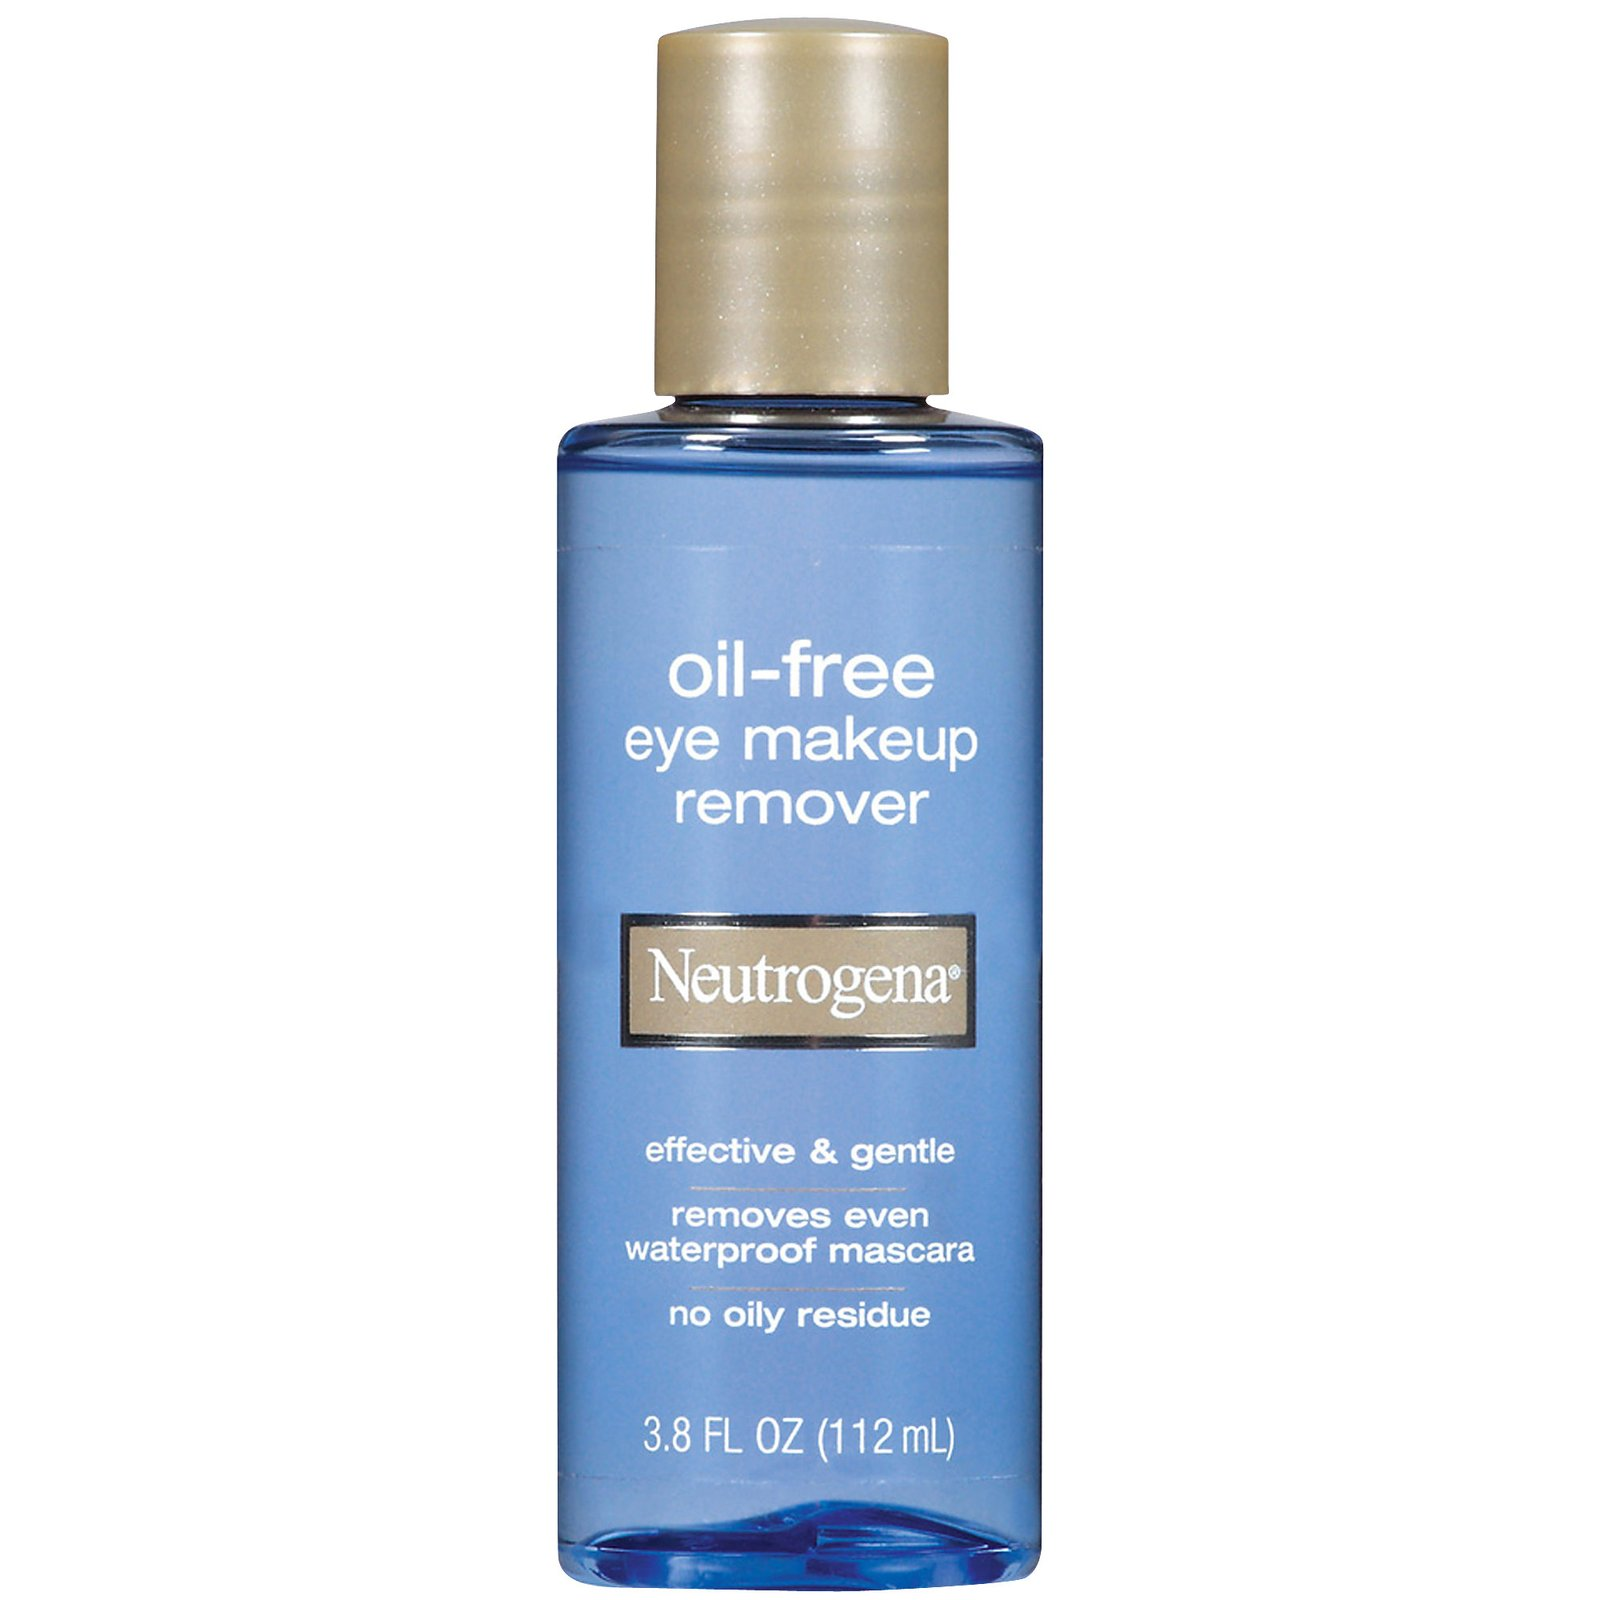 Drugstore eye makeup remover